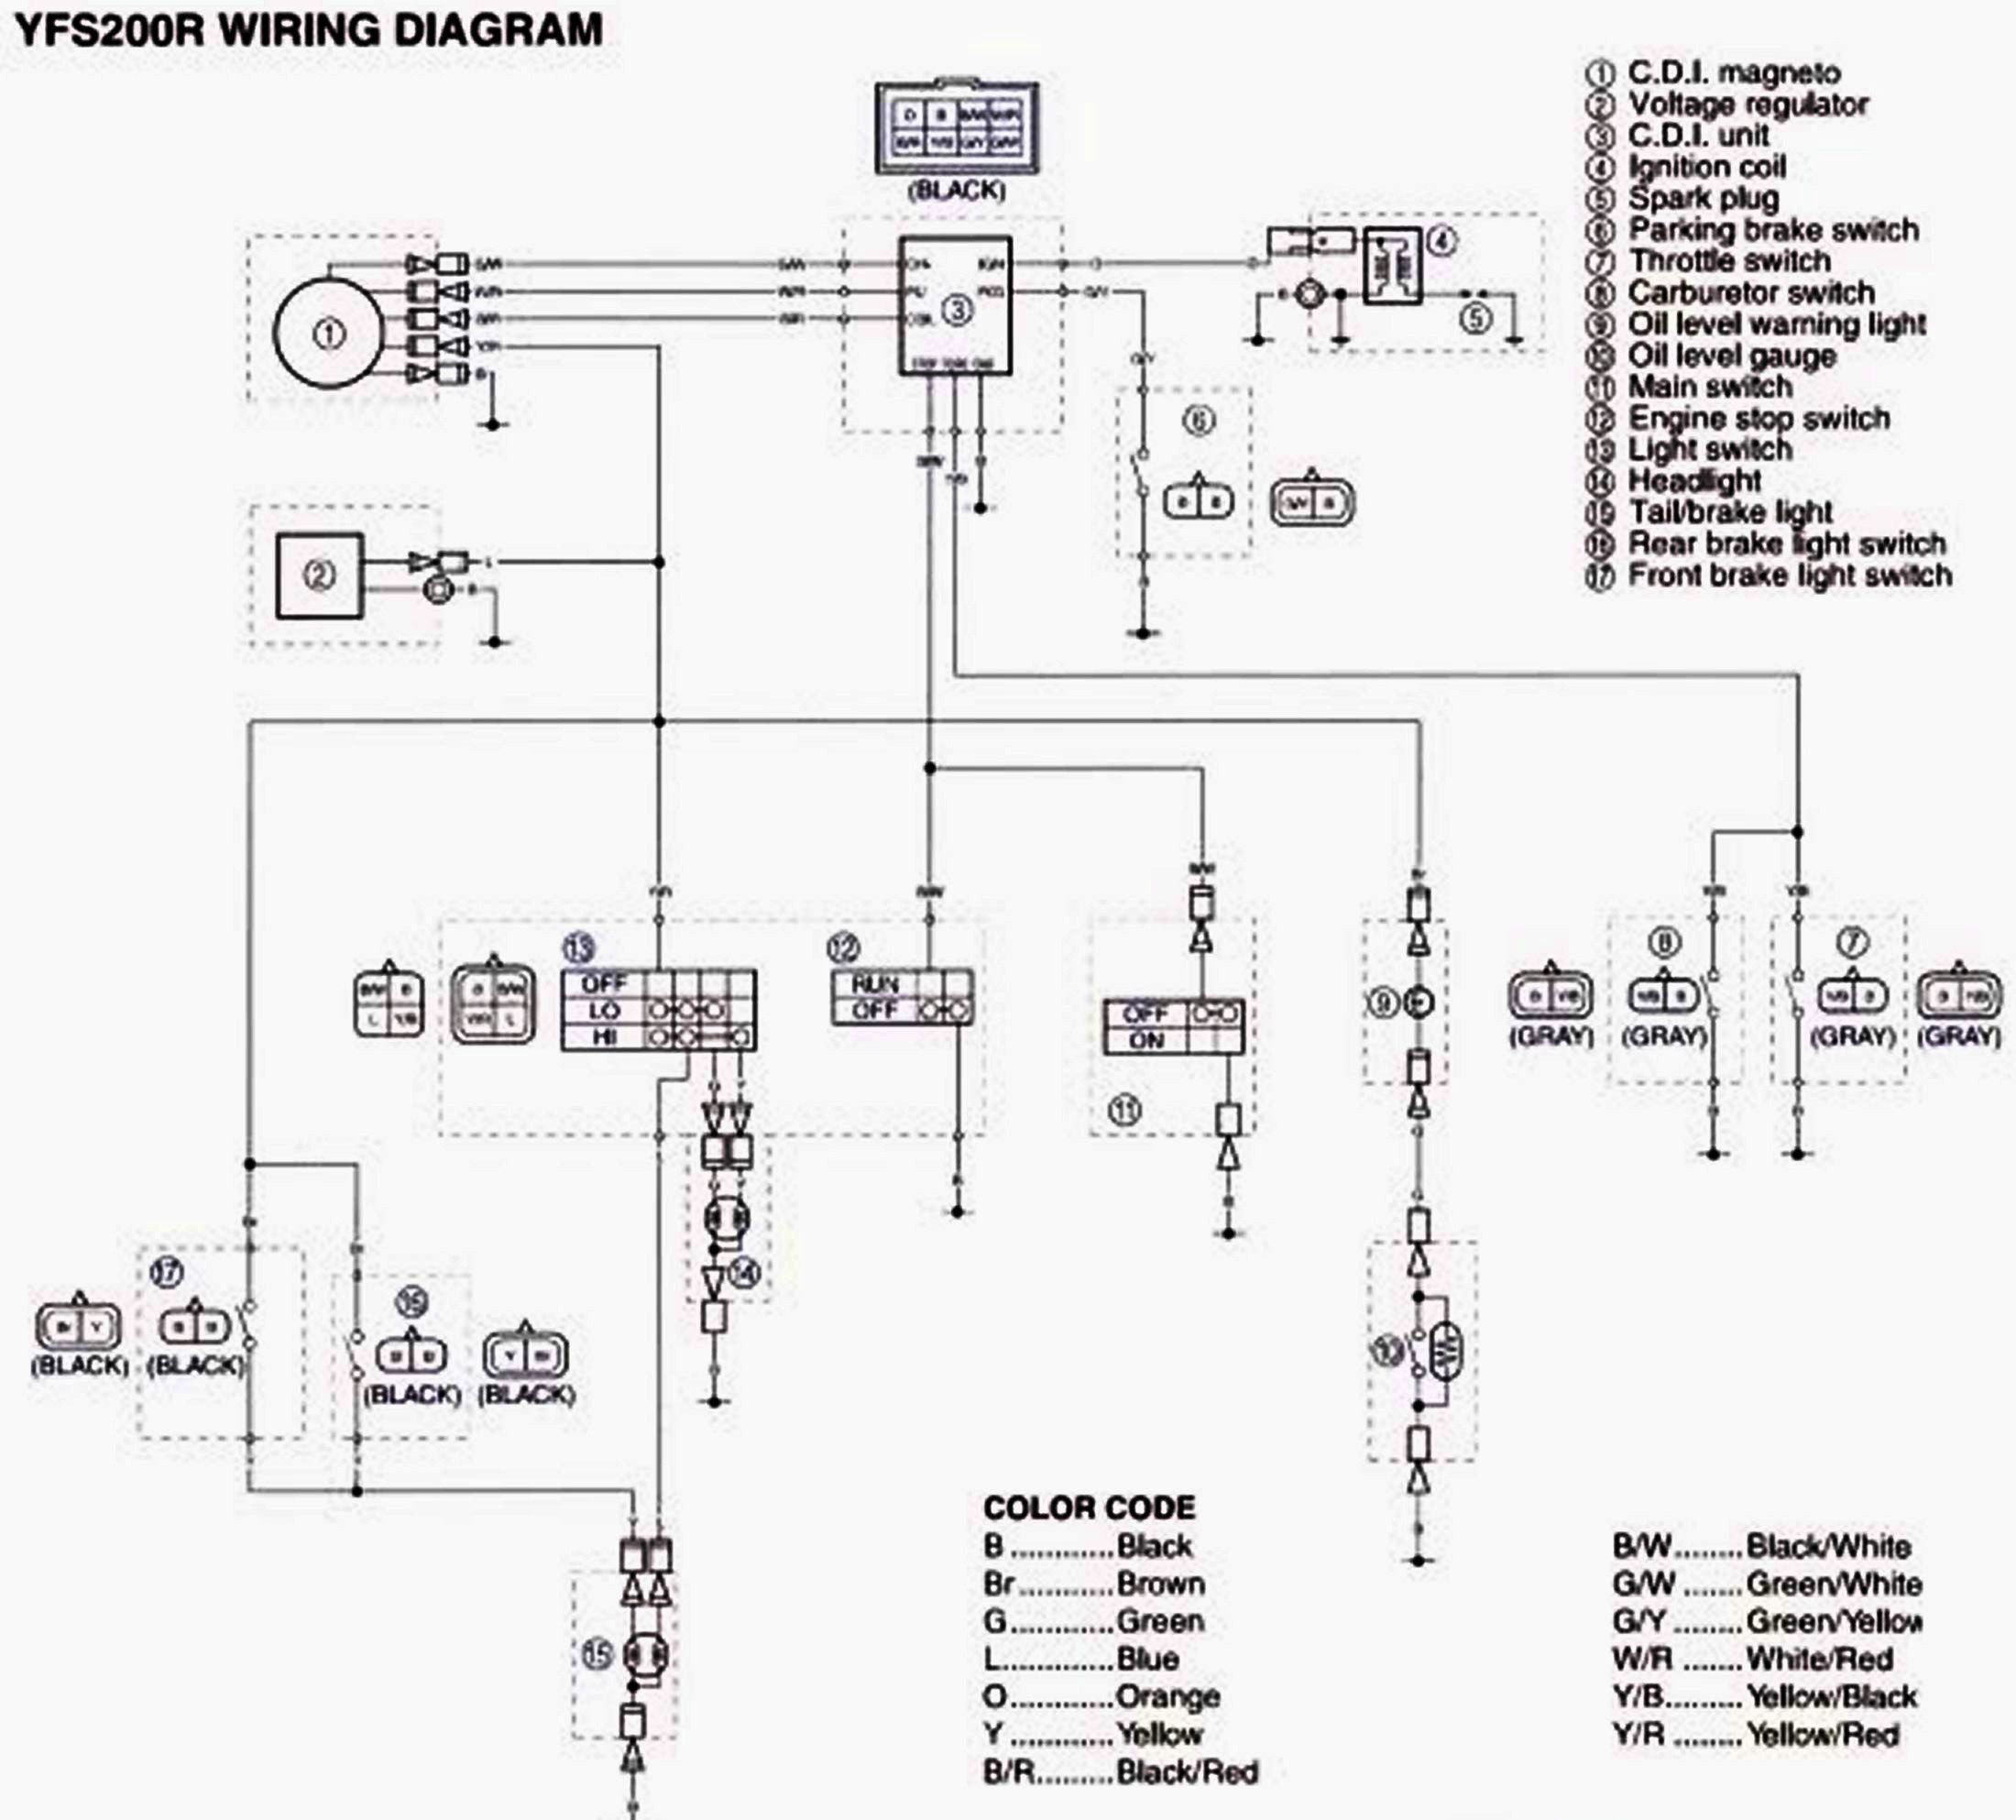 yamaha blaster electrical diagram  yamaha  free engine image for user manual download